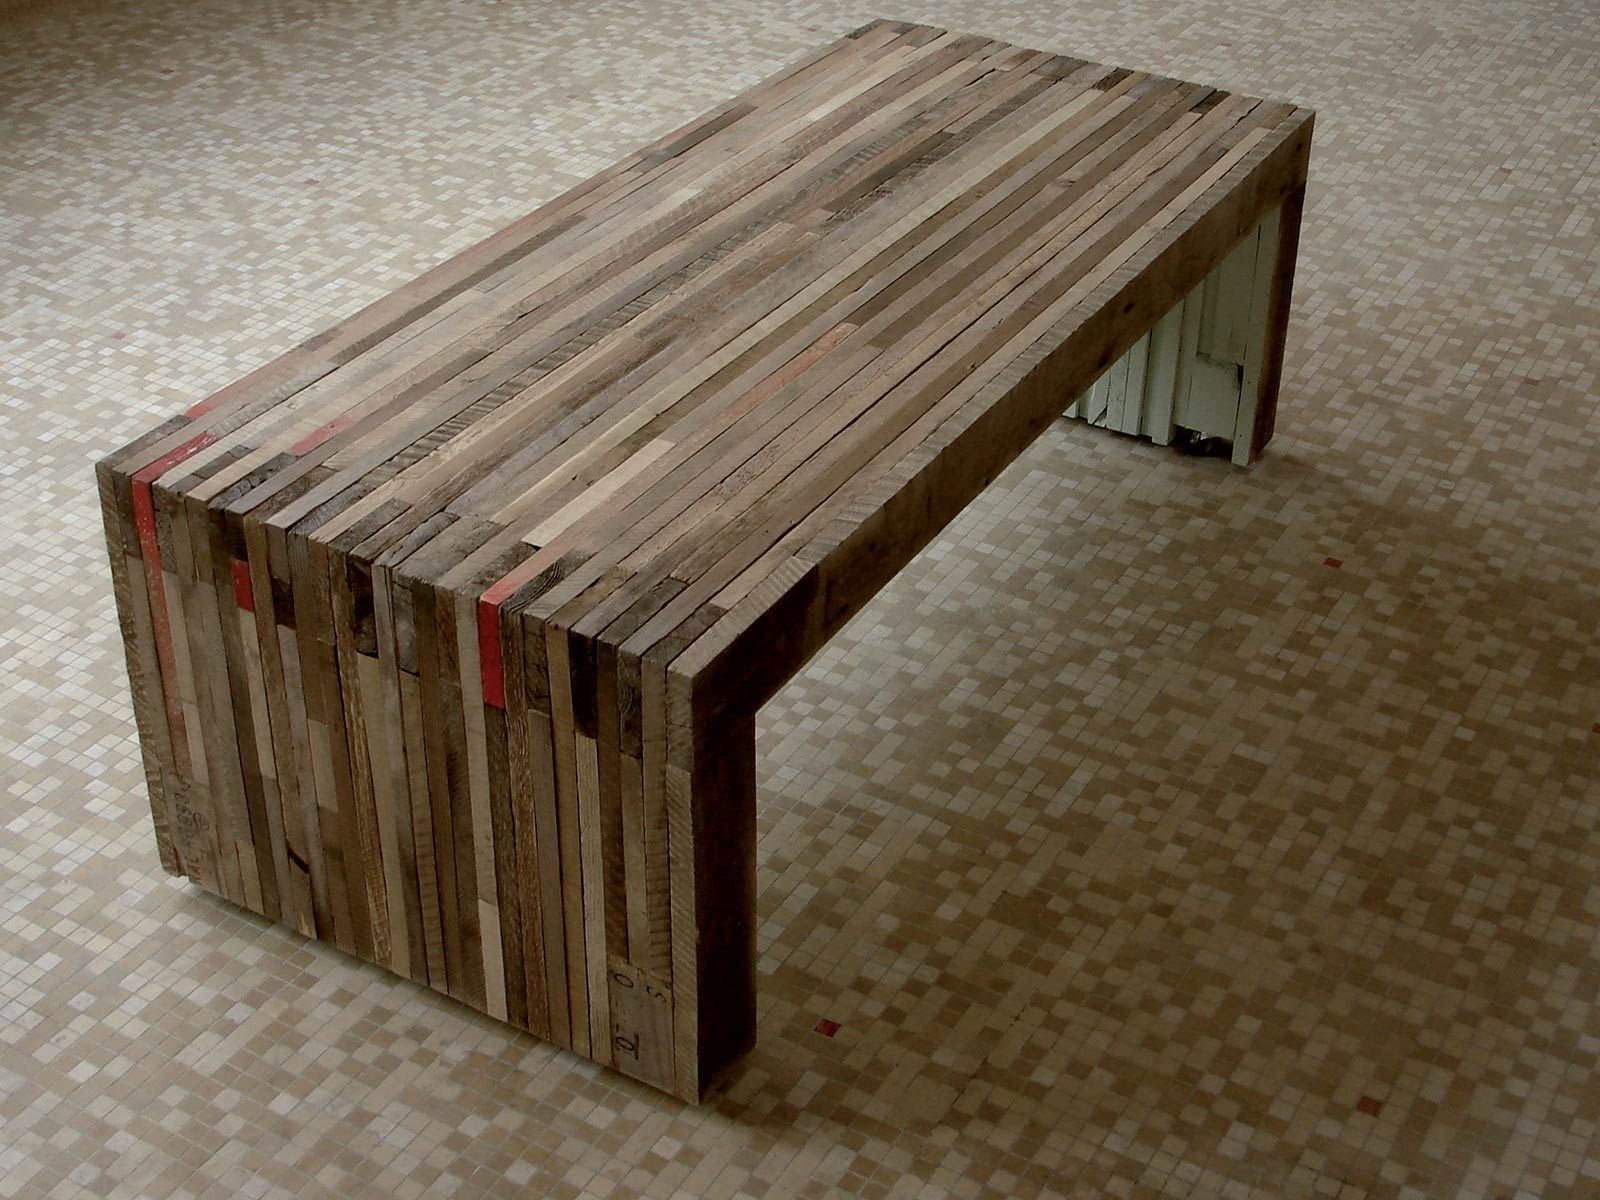 Conception et production d une table basse mat riaux for Bois de palette